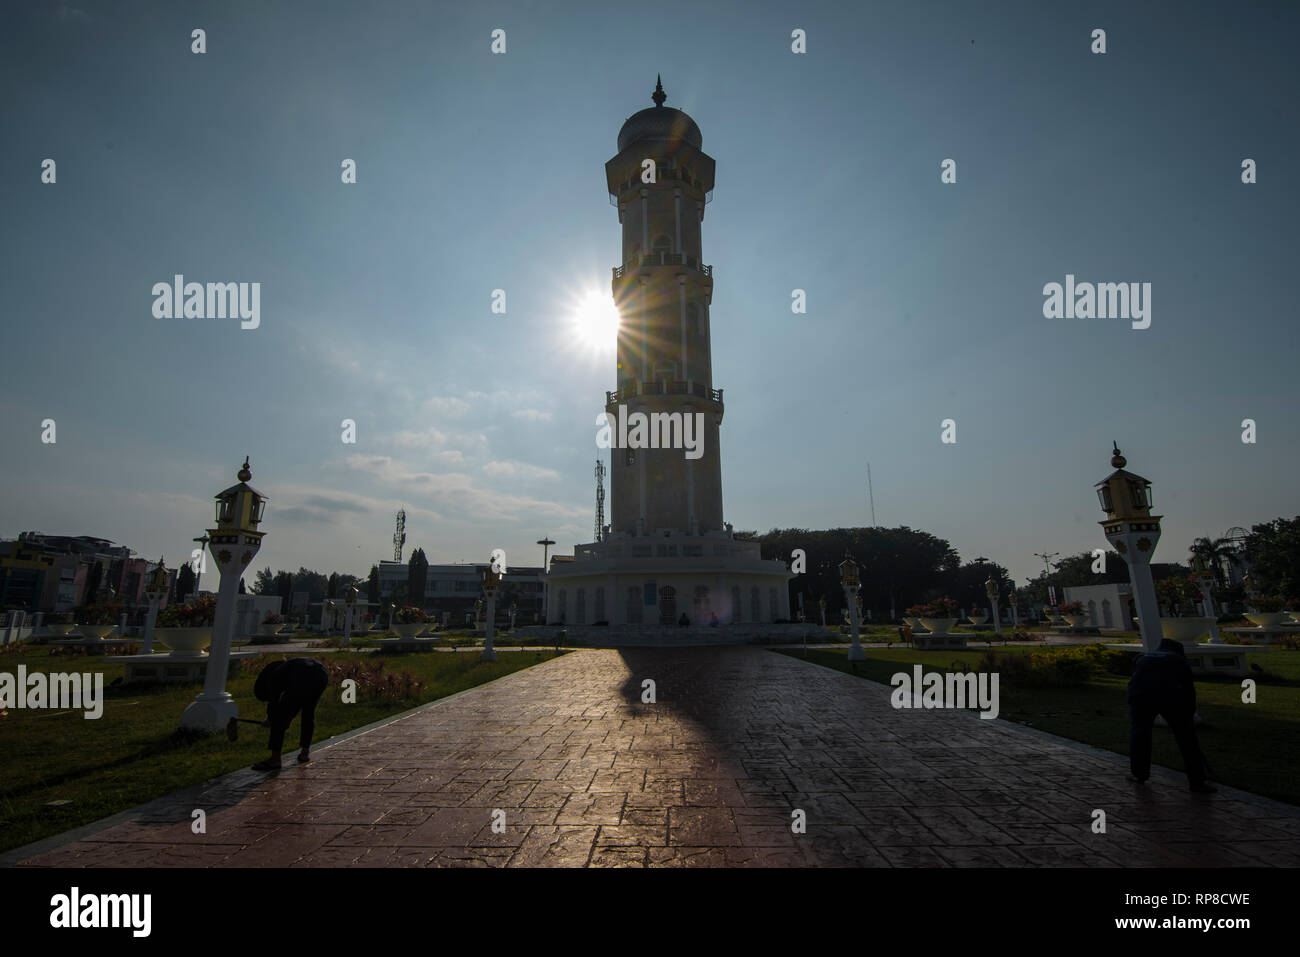 Banda Aceh, ACEH Province, INDONESIA - February 20 2019: Baiturrahman Grand Mosque is located in the heart of Banda Aceh City. Stock Photo